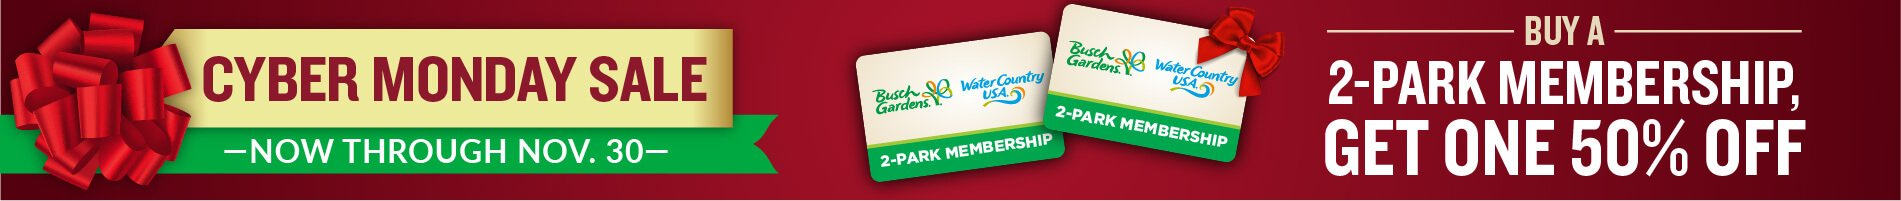 Busch Gardens & Water Country USA Cyber Monday Sale